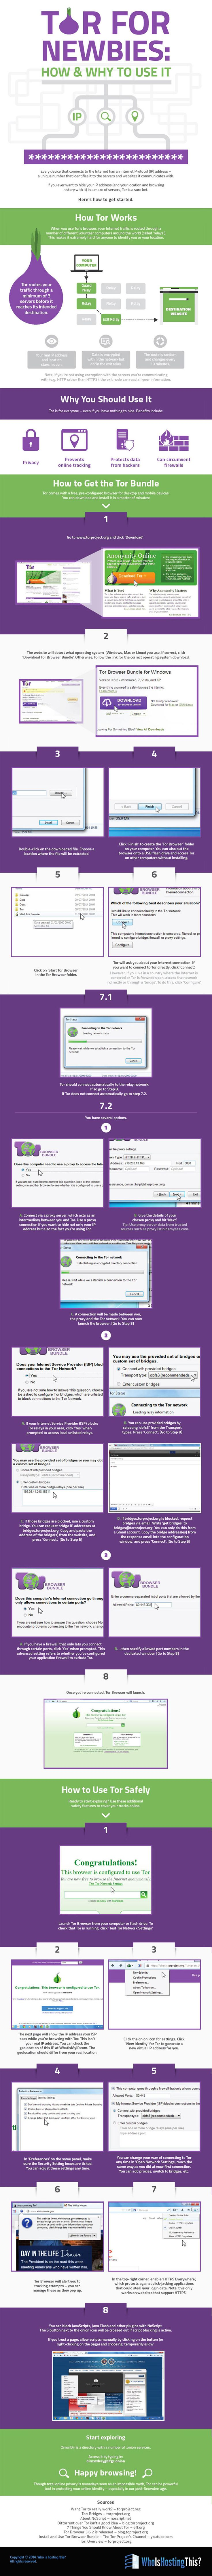 How Tor Browser Works Infographic. Topic: Deep web, dark web, darknet, internet, NSA, privacy, The Onlion Network, VPN, anonymous.